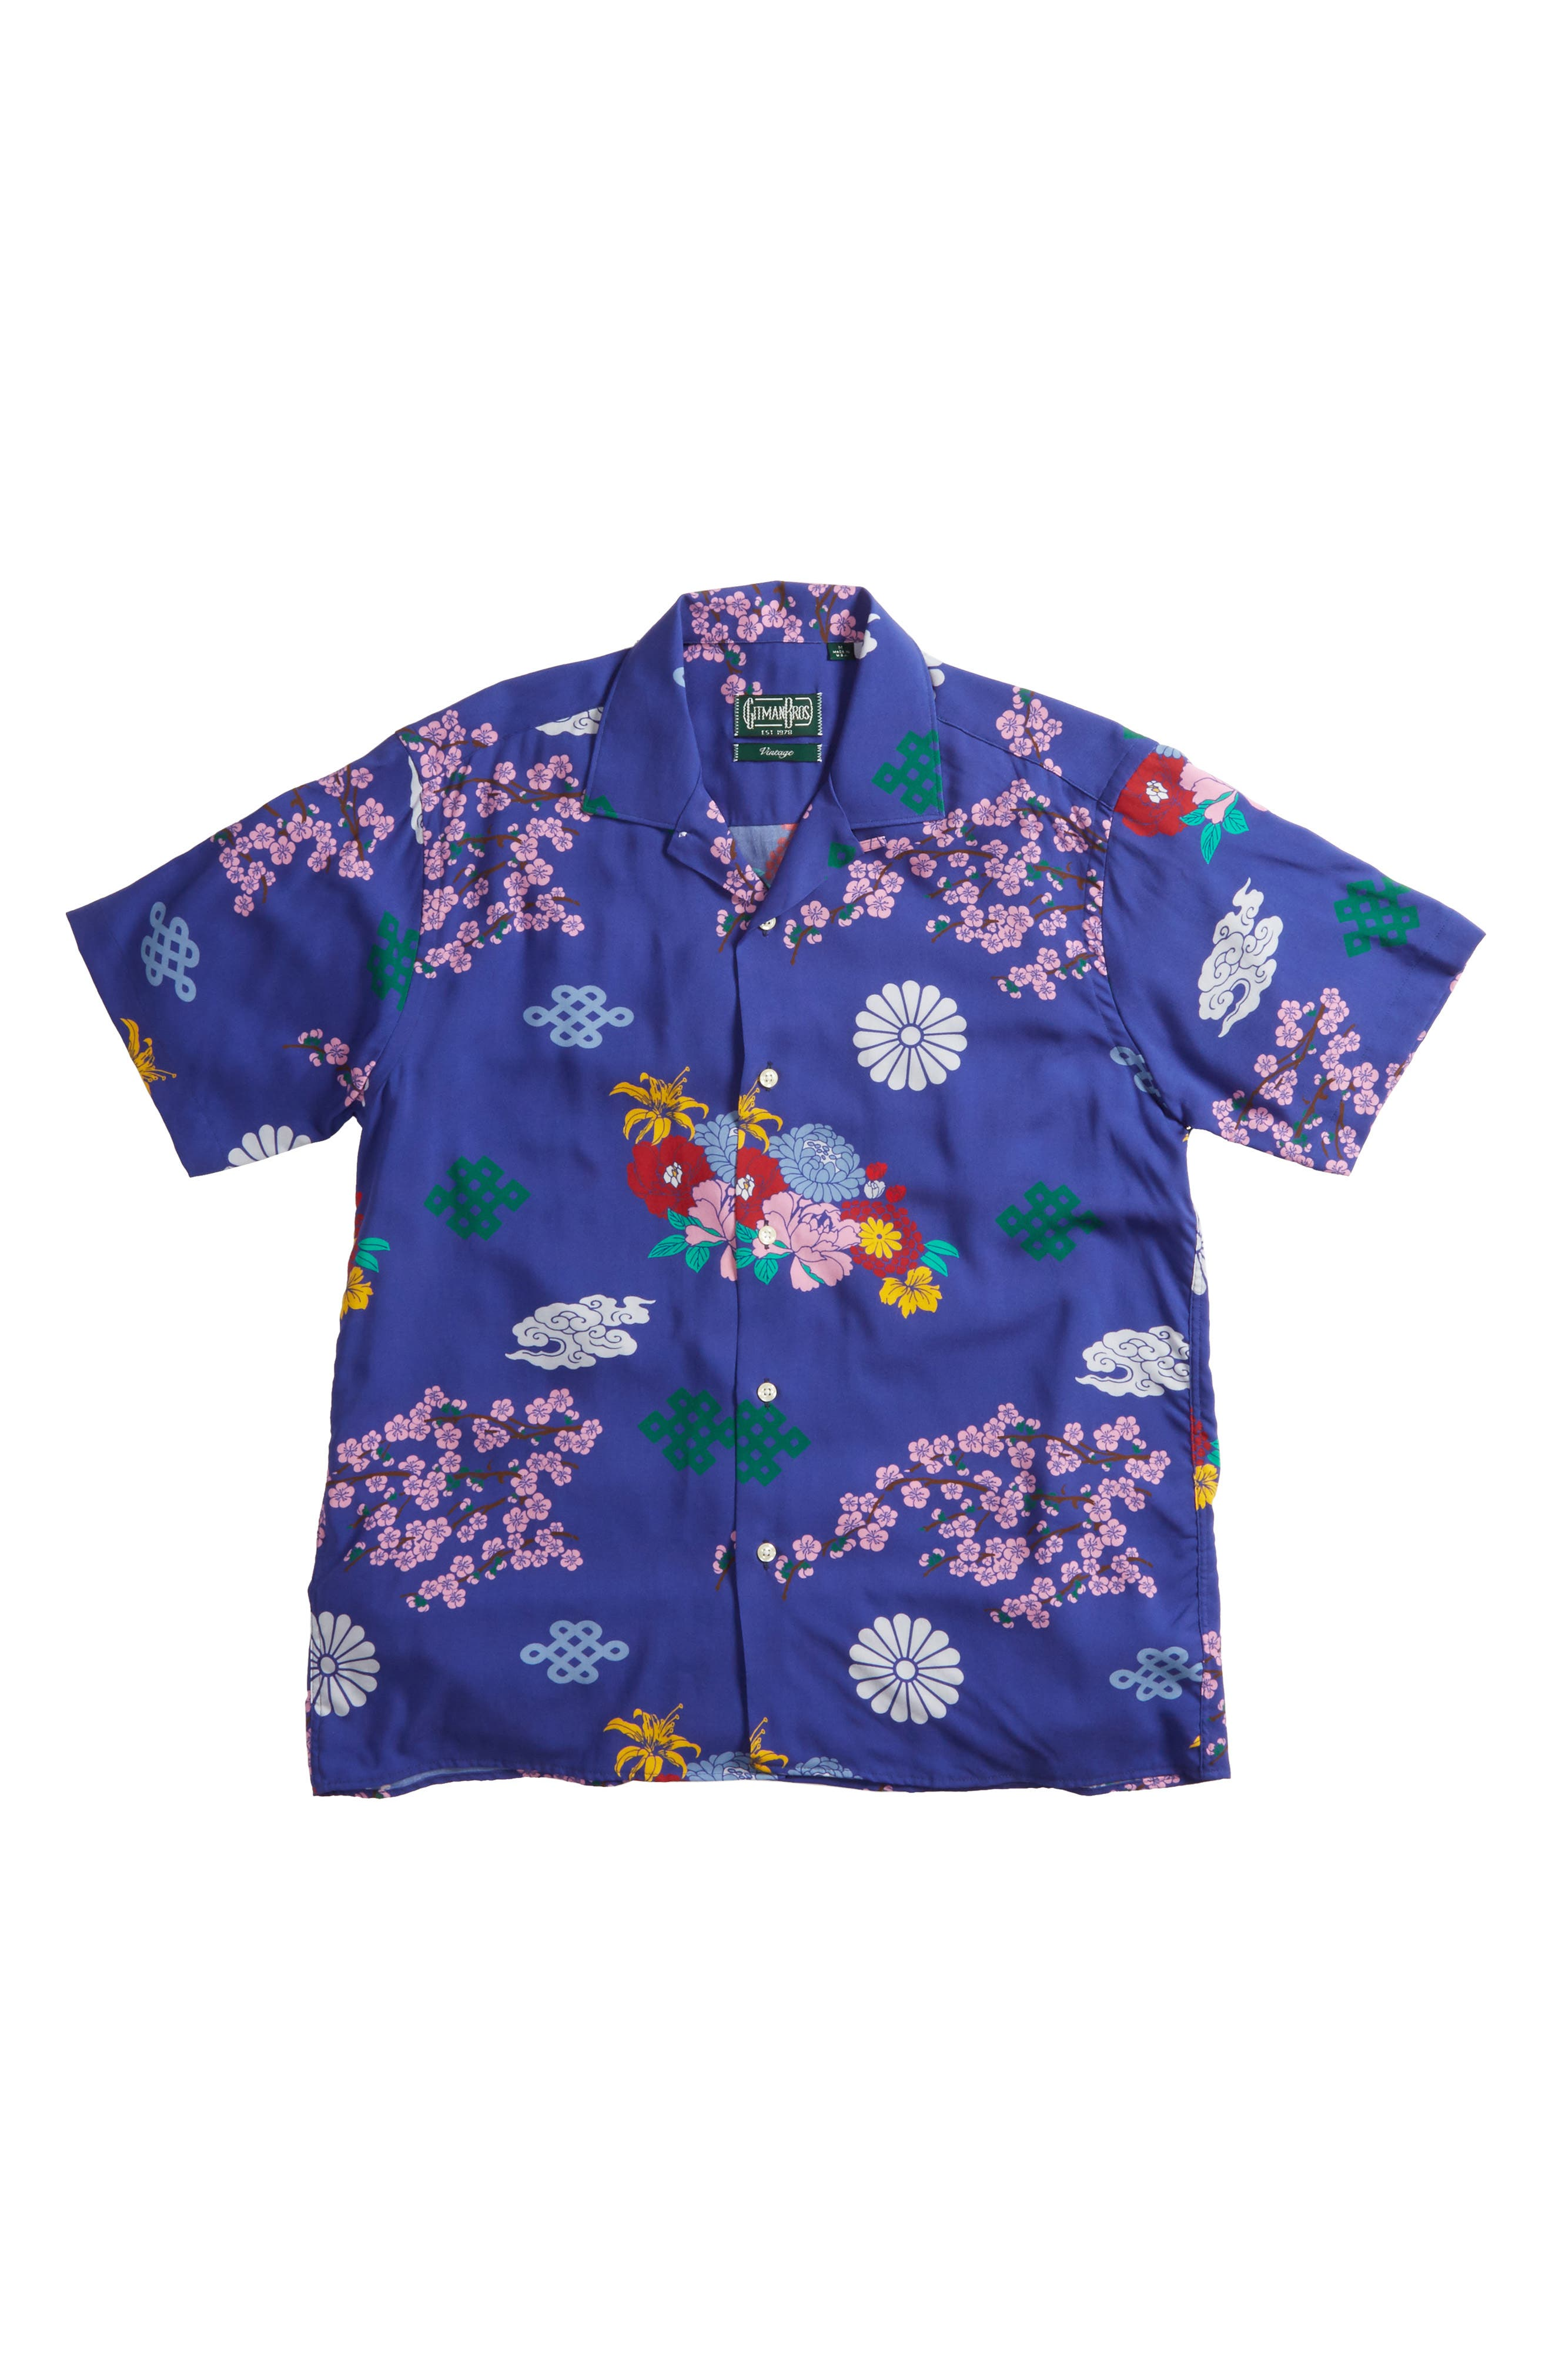 x The North Face Men's Floral Print Camp Shirt,                         Main,                         color, Blue Ground